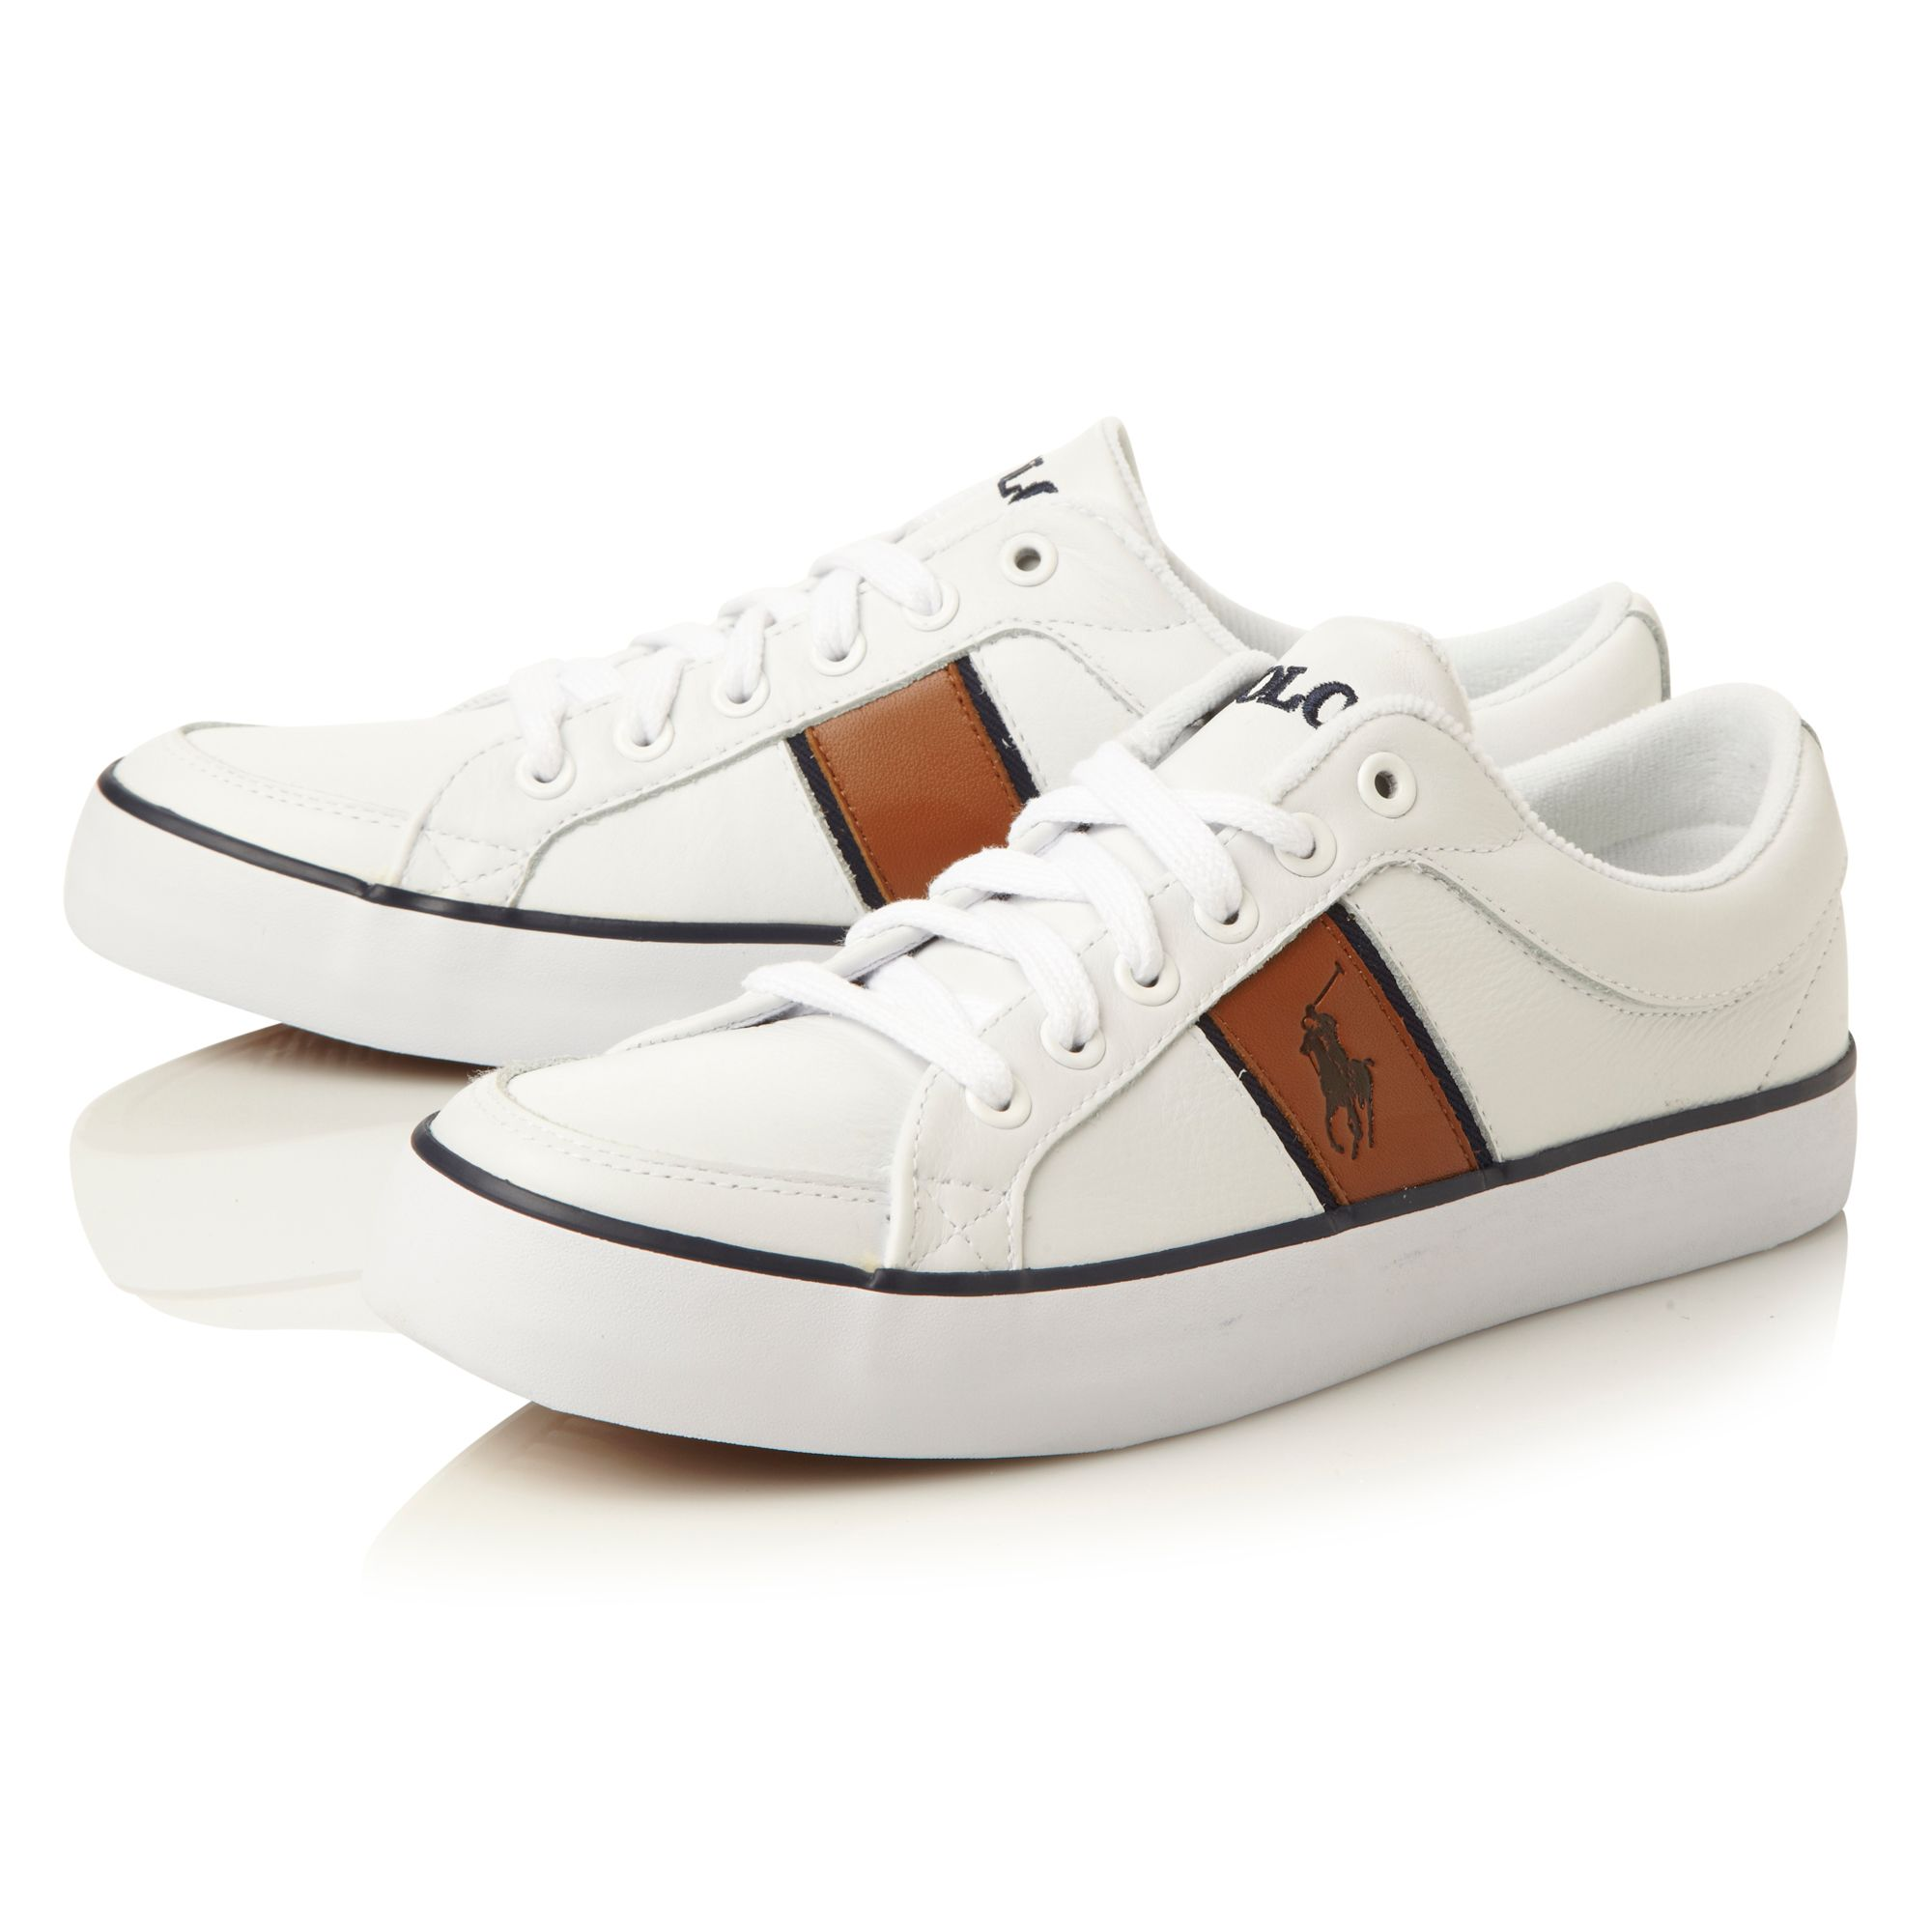 Bolingbrook leather logo casual trainer